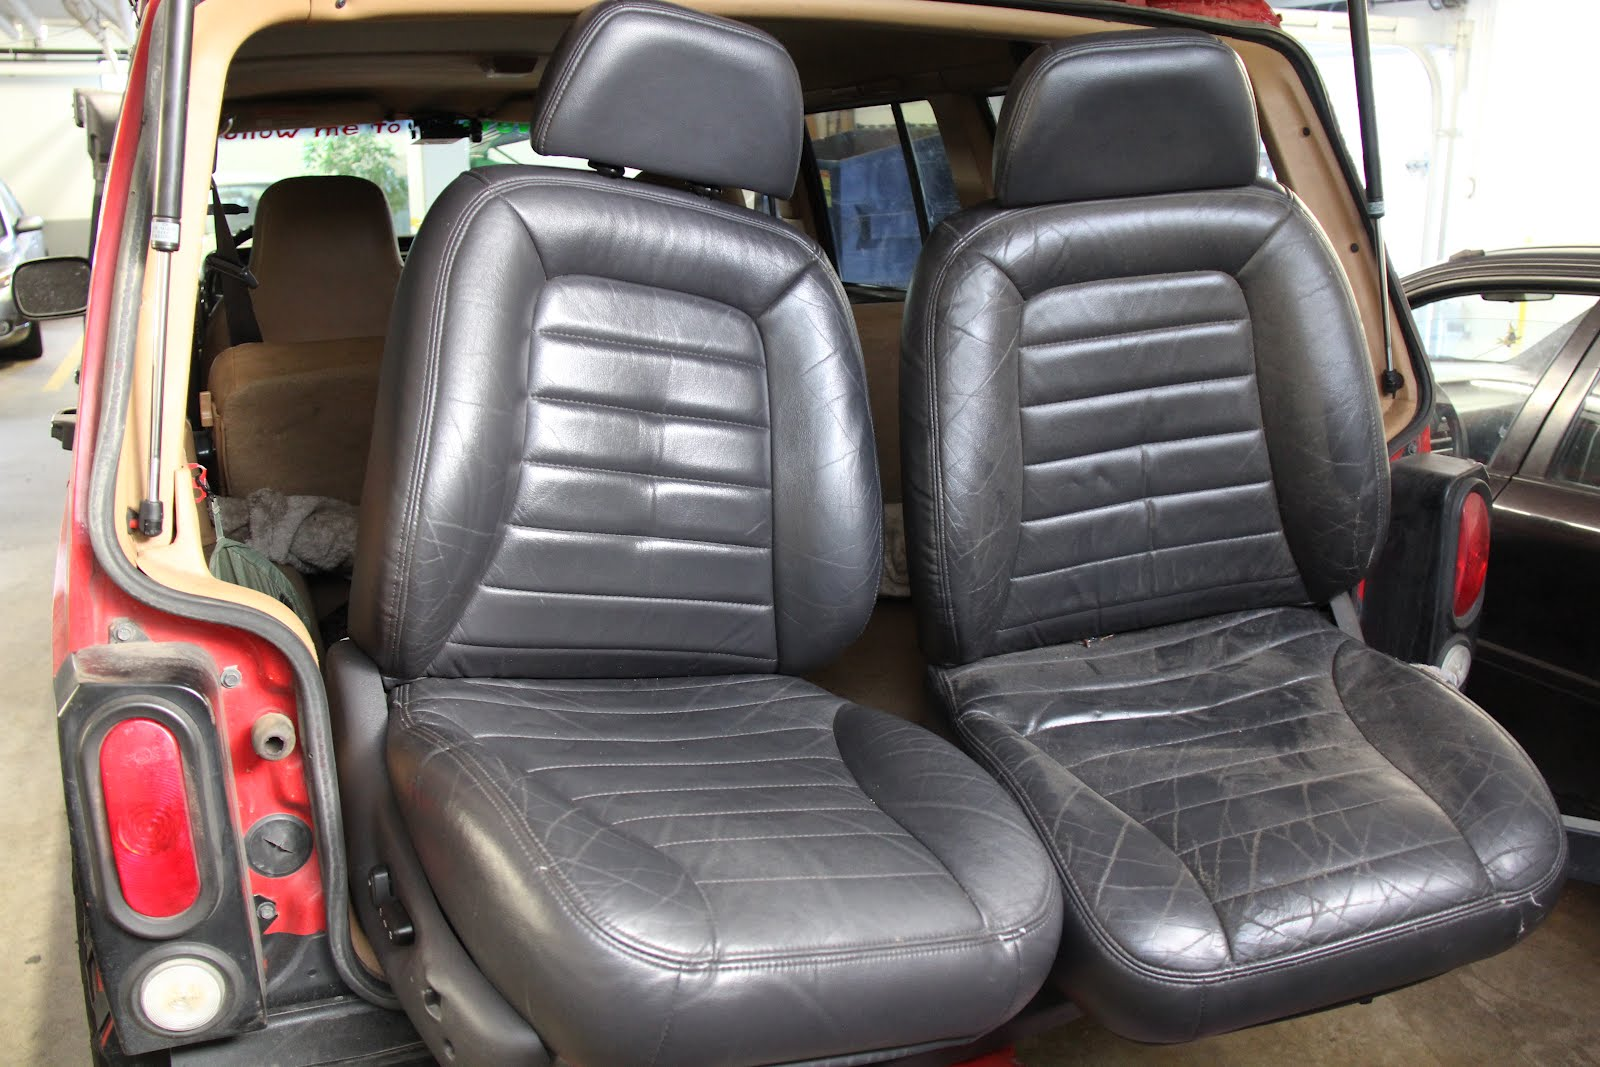 an decline 97 zj seats in 97 xj. Black Bedroom Furniture Sets. Home Design Ideas